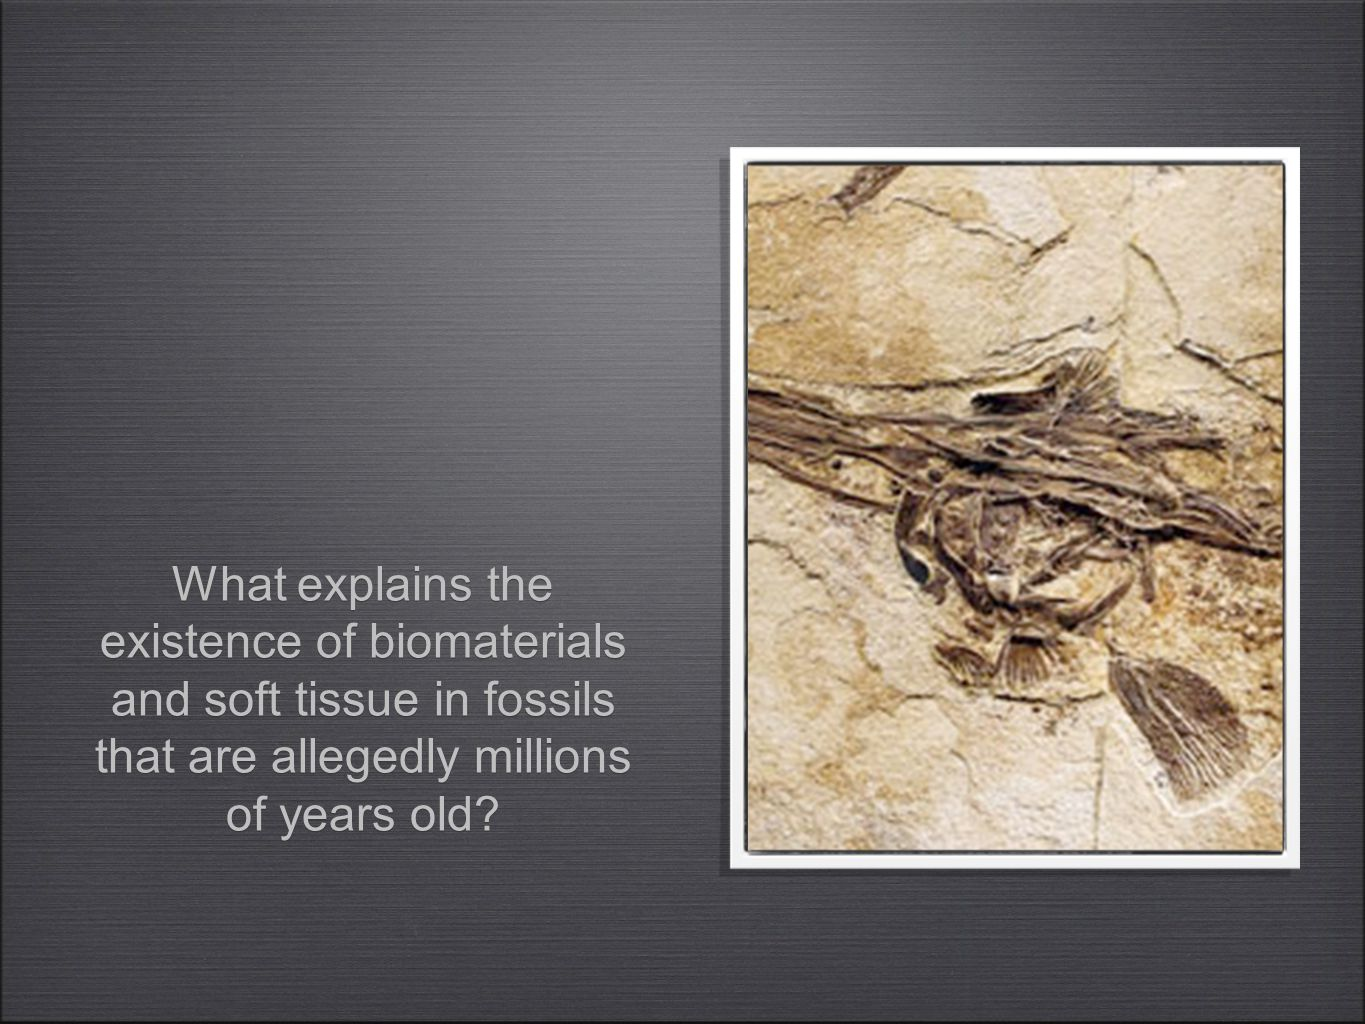 What explains the existence of biomaterials and soft tissue in fossils that are allegedly millions of years old